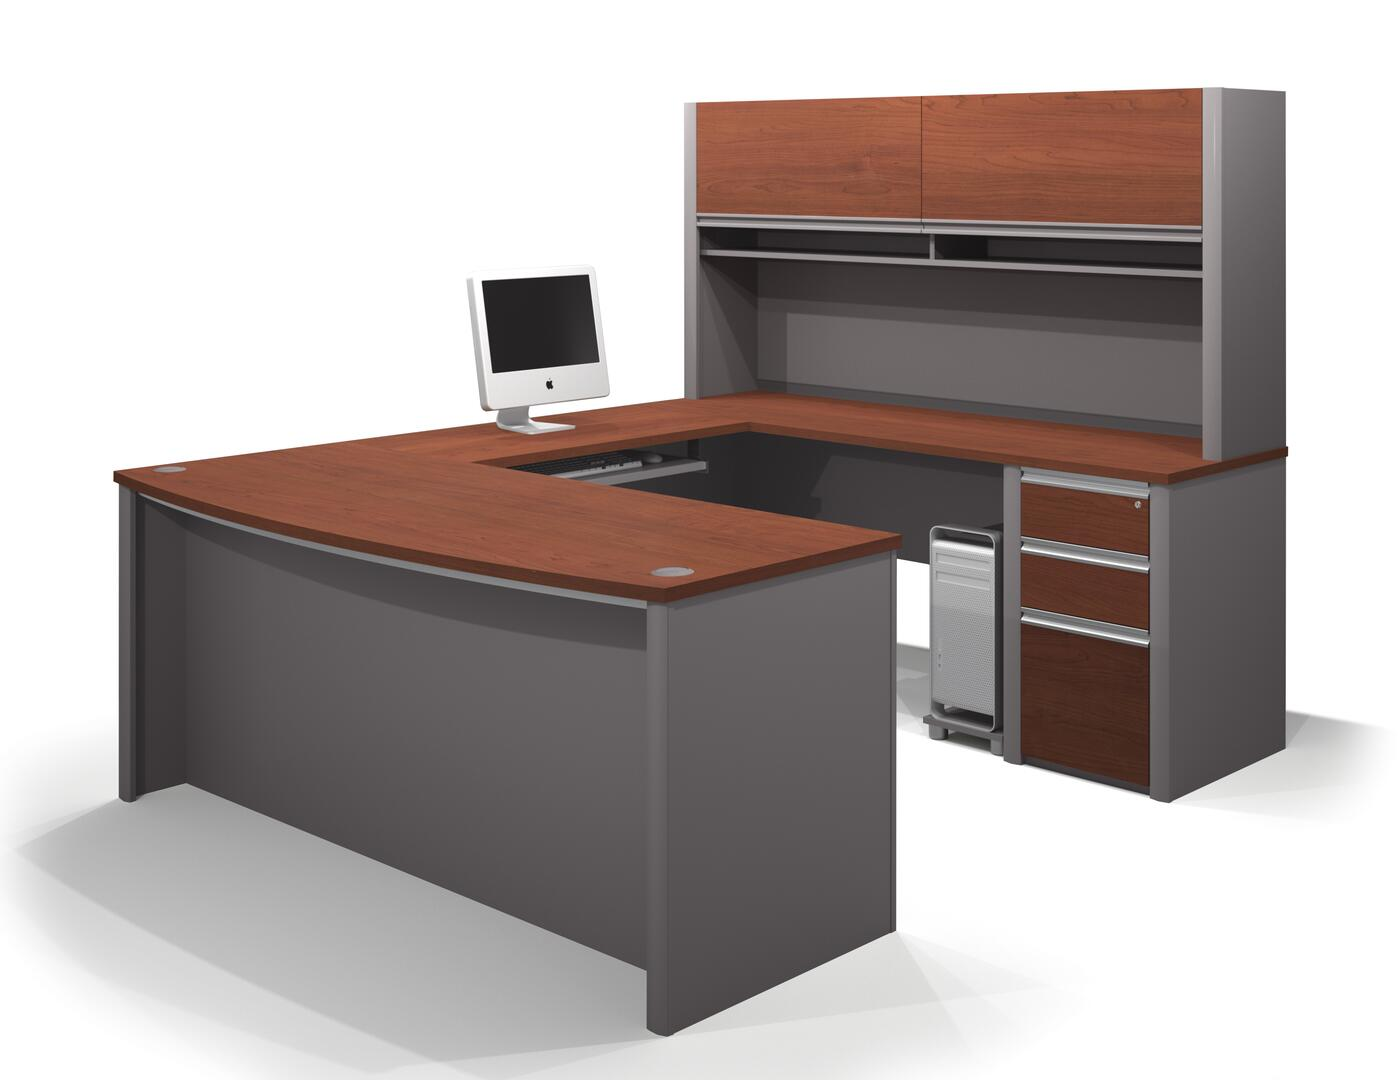 Bestar furniture 9388139 modern u shape office desk for Furniture connection